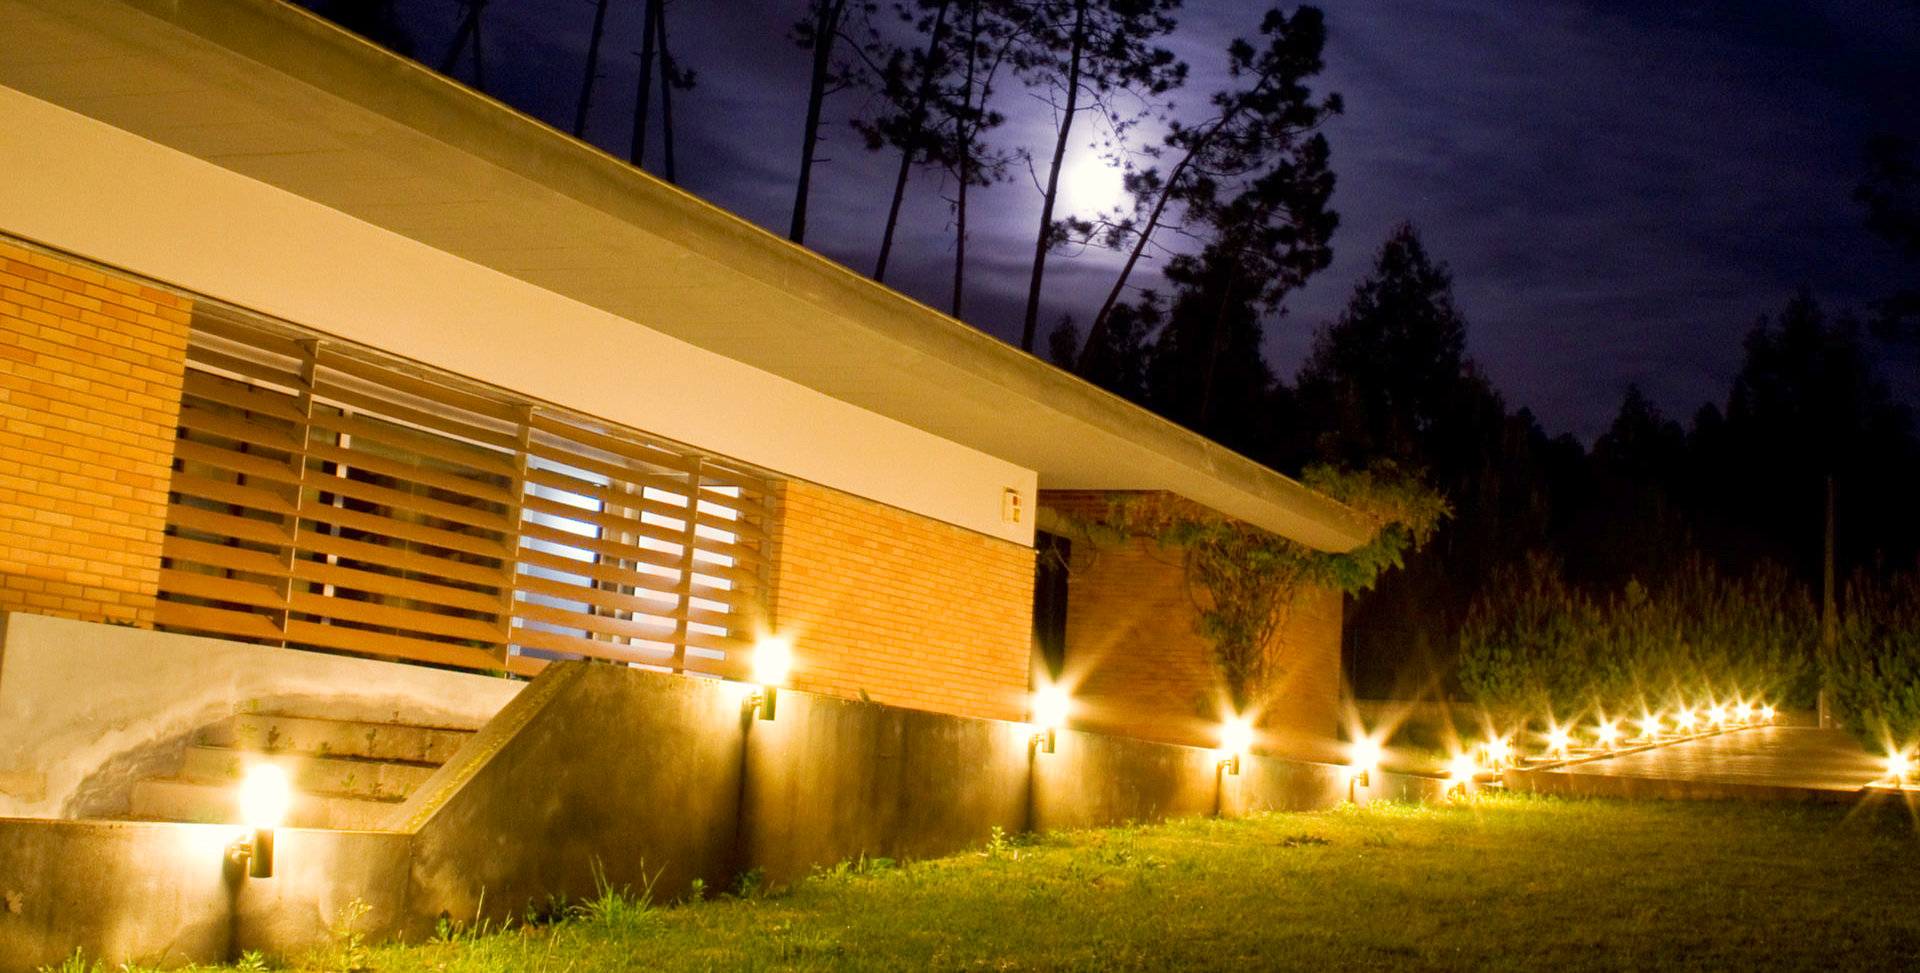 led lights aligned outdoor